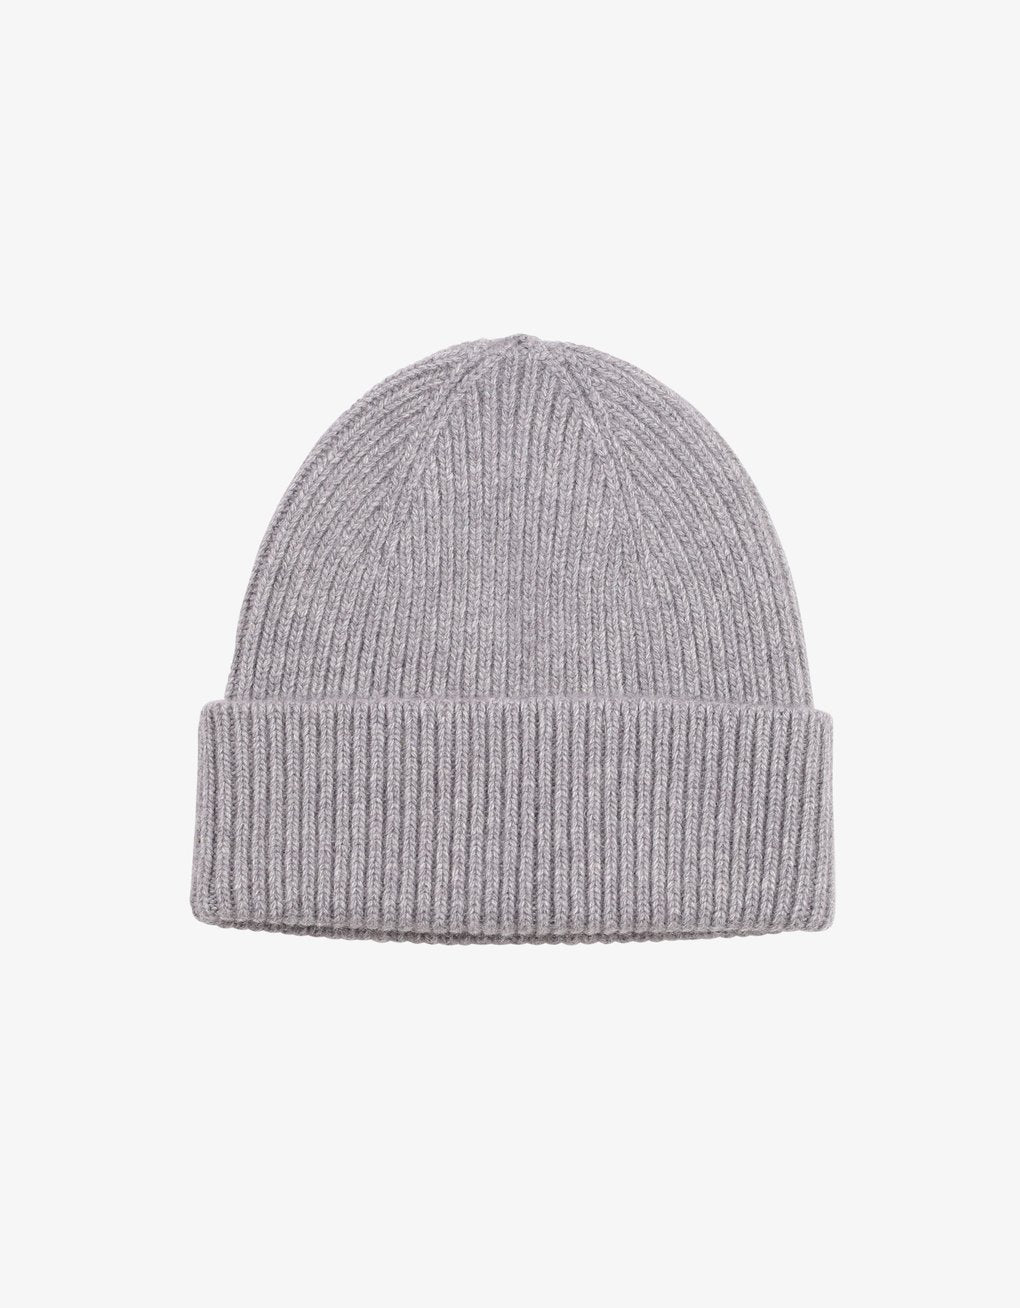 COLORFUL STANDARD | Merino Wool Beanie | Heather Grey - LONDØNWORKS